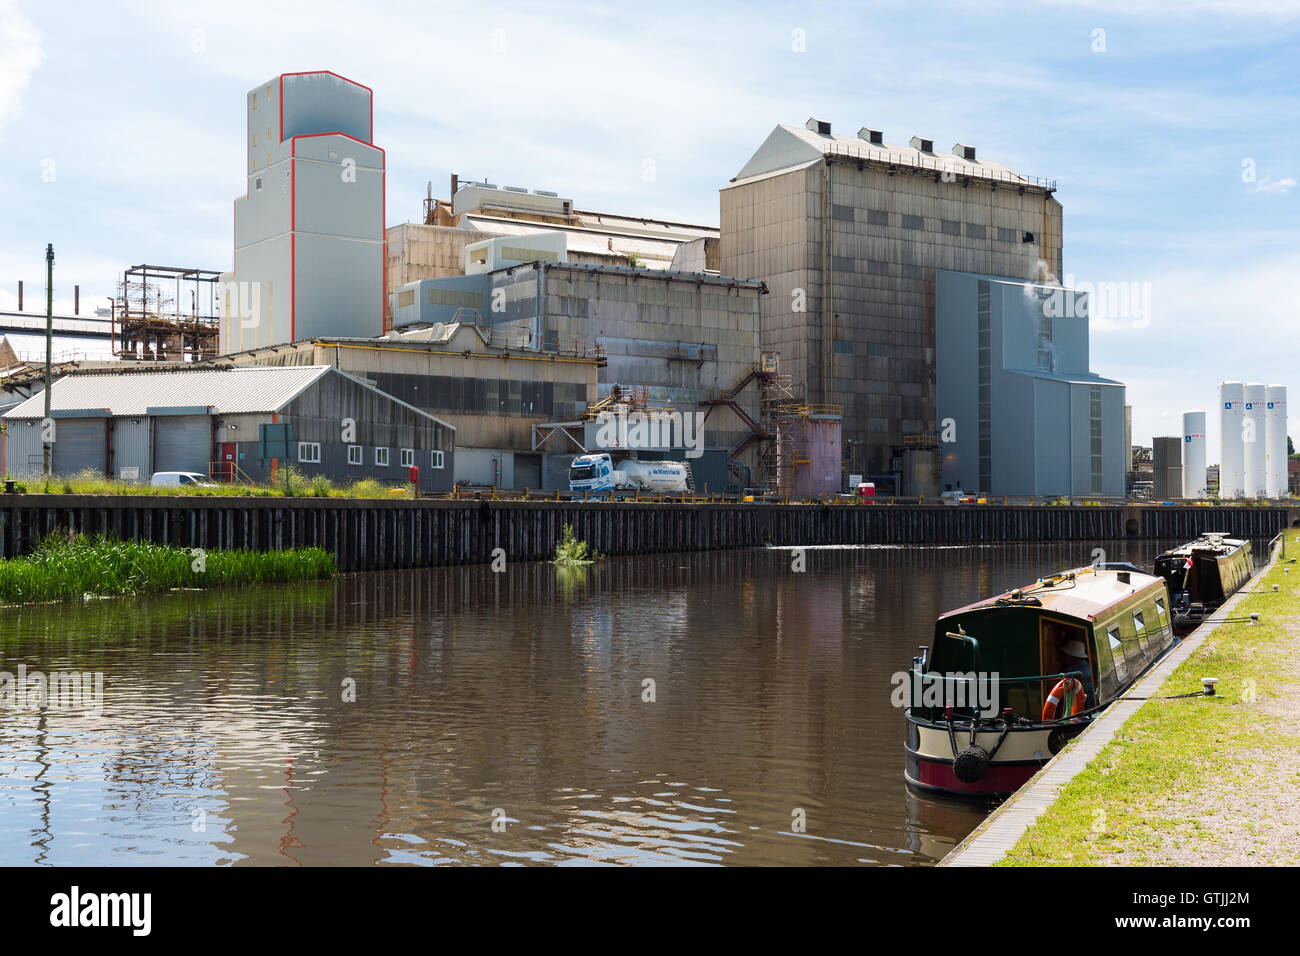 Barges waiting their turn turn to use Anderton Boat Lift.  River Weaver Navigation. Cheshire England UK Stock Photo